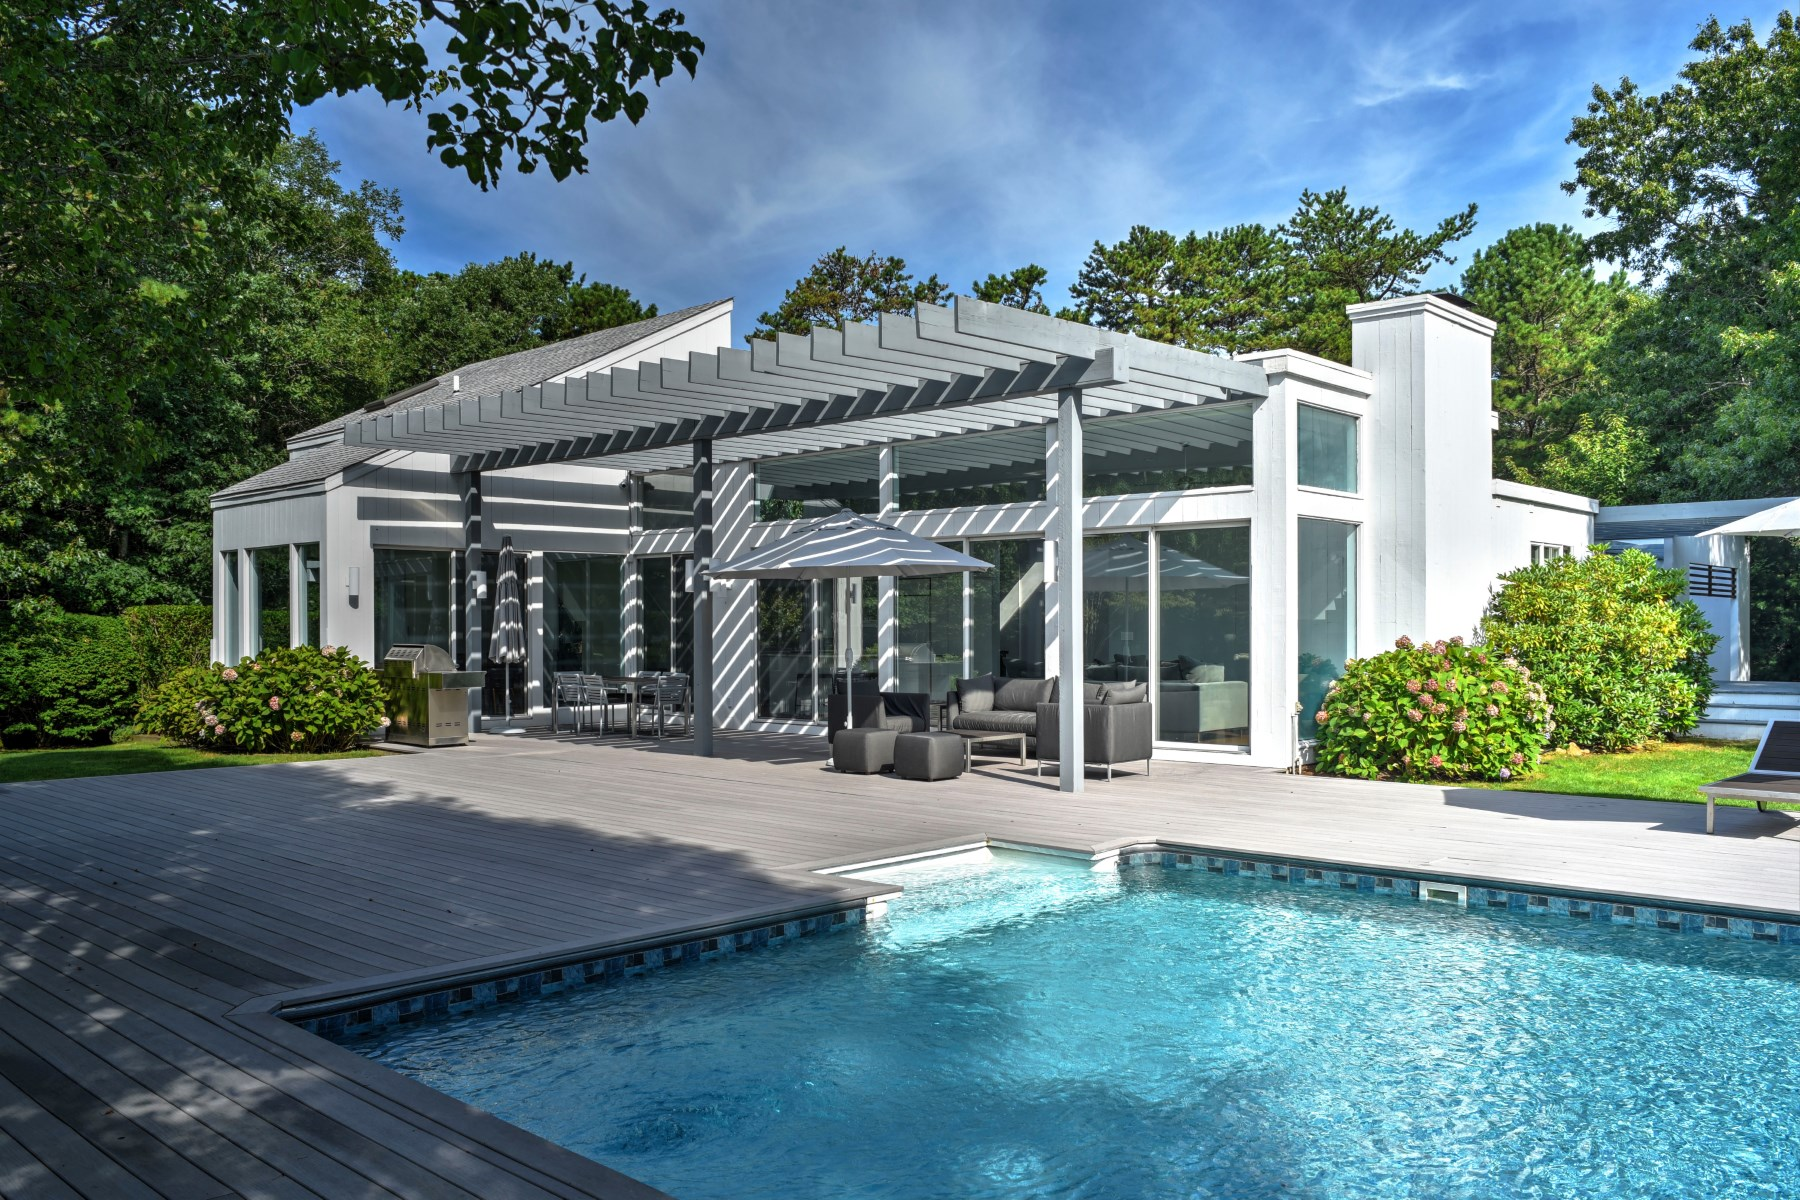 Single Family Home for Sale at The Limelight Estate 580 Hands Creek Road East Hampton, New York, 11937 United States